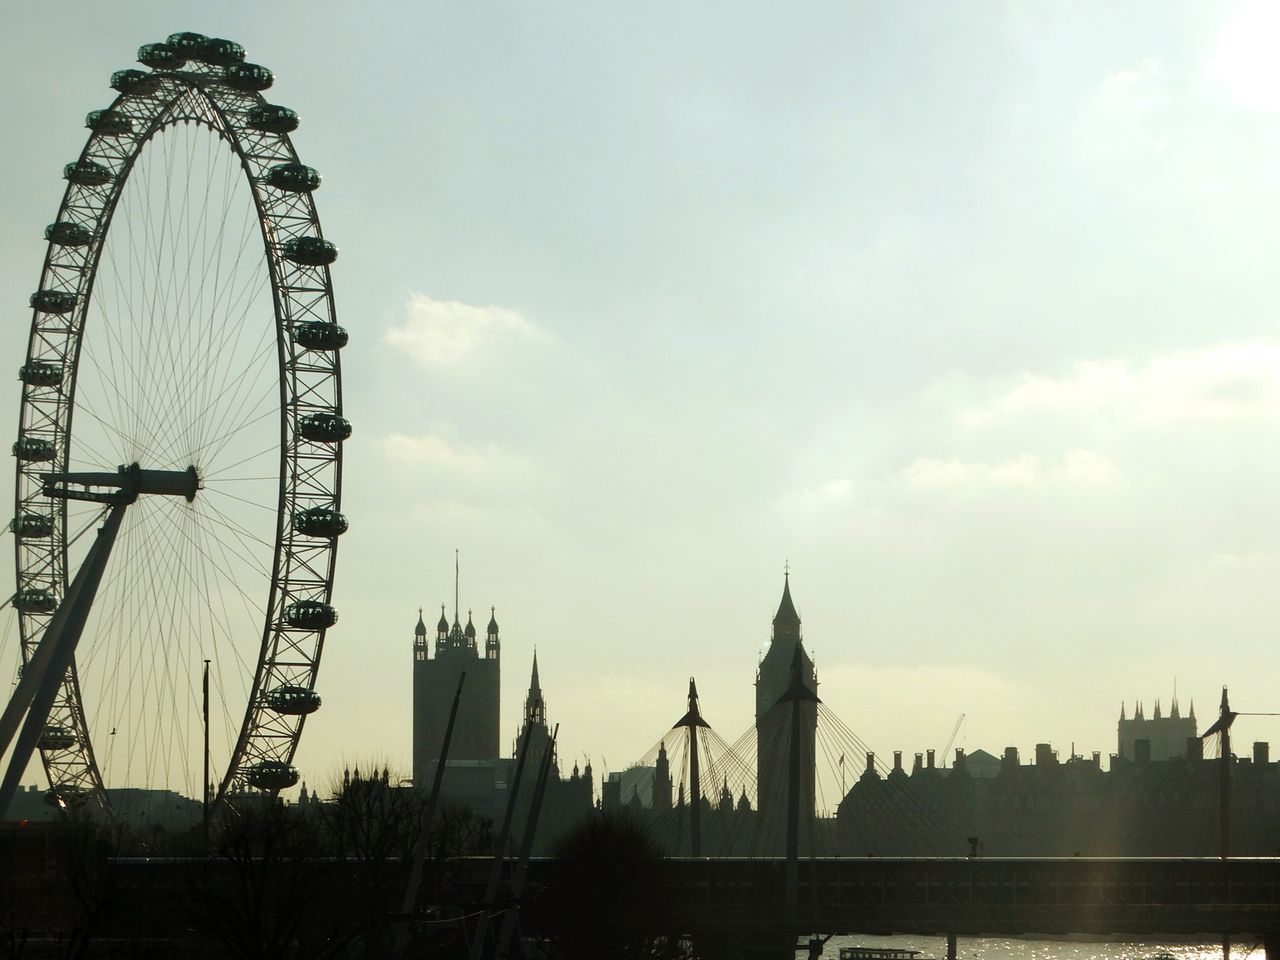 City Travel Destinations Ferris Wheel Cultures Sky Cloud - Sky Outdoors Bridge - Man Made Structure No People London Westminster London Eye Clock Tower Cityscape Fame Day